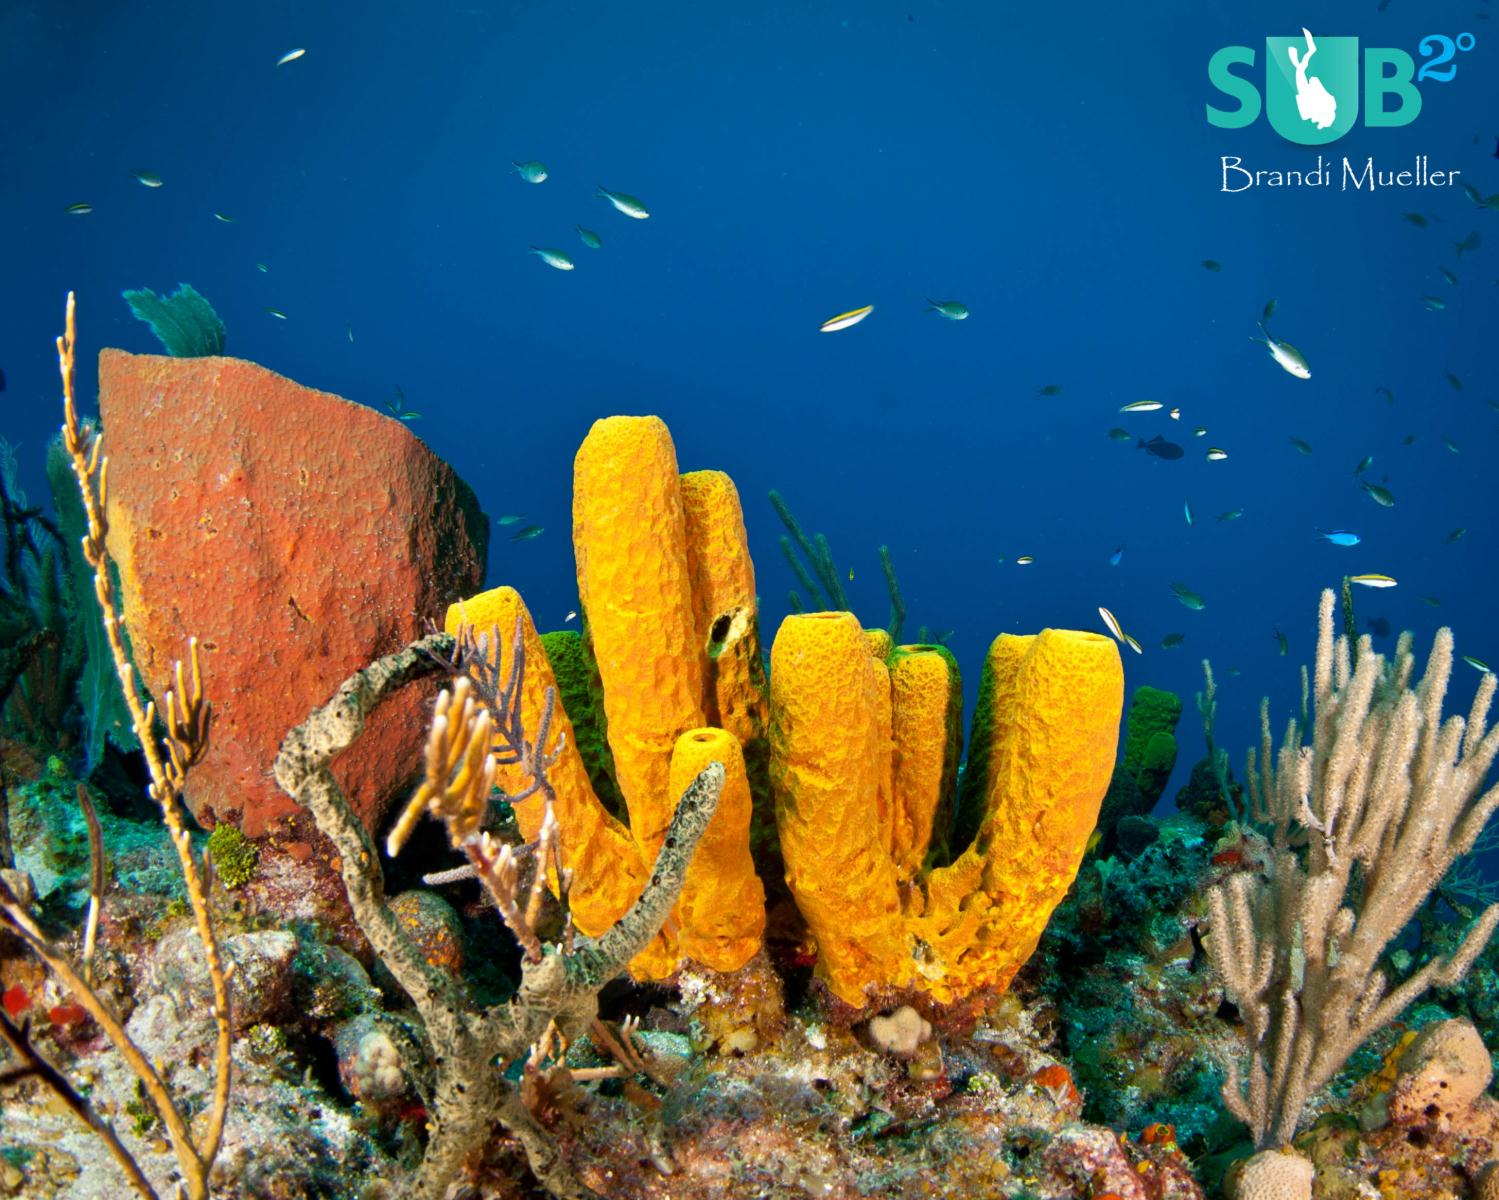 The Cayman Islands offer a Garden of Underwater Eden just offshore.